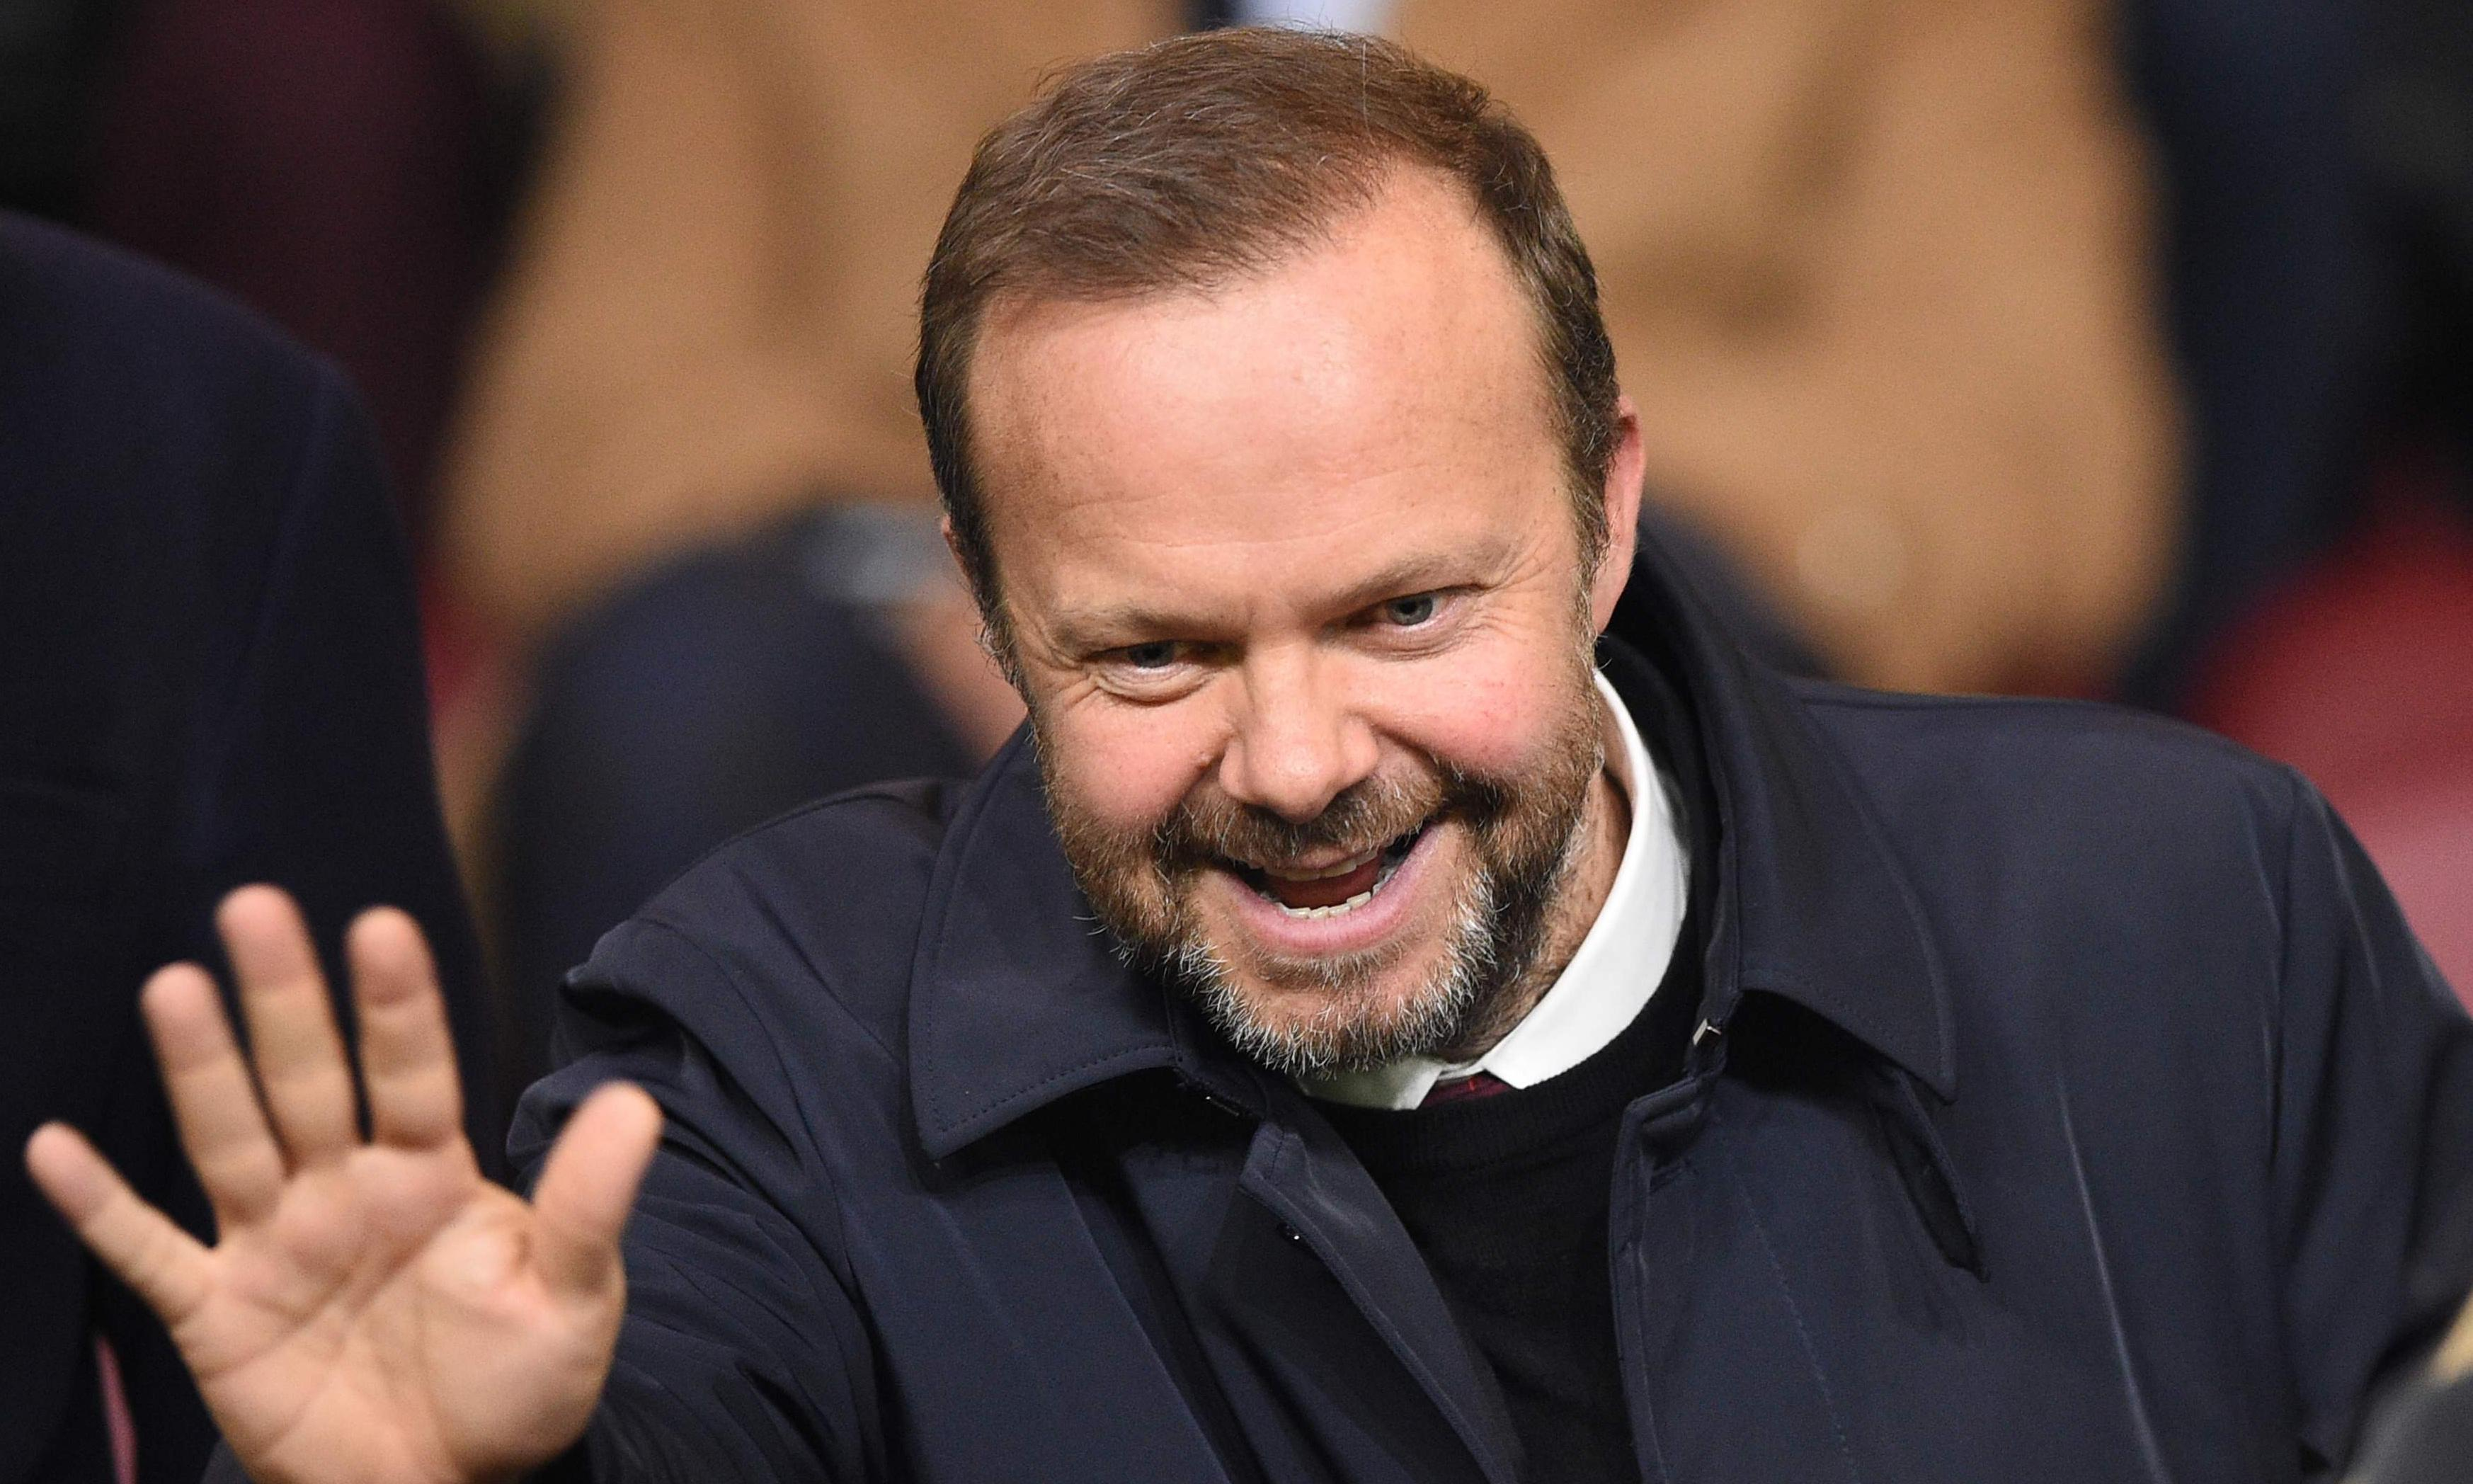 Manchester United's Ed Woodward: admired by Glazers, despised by fans